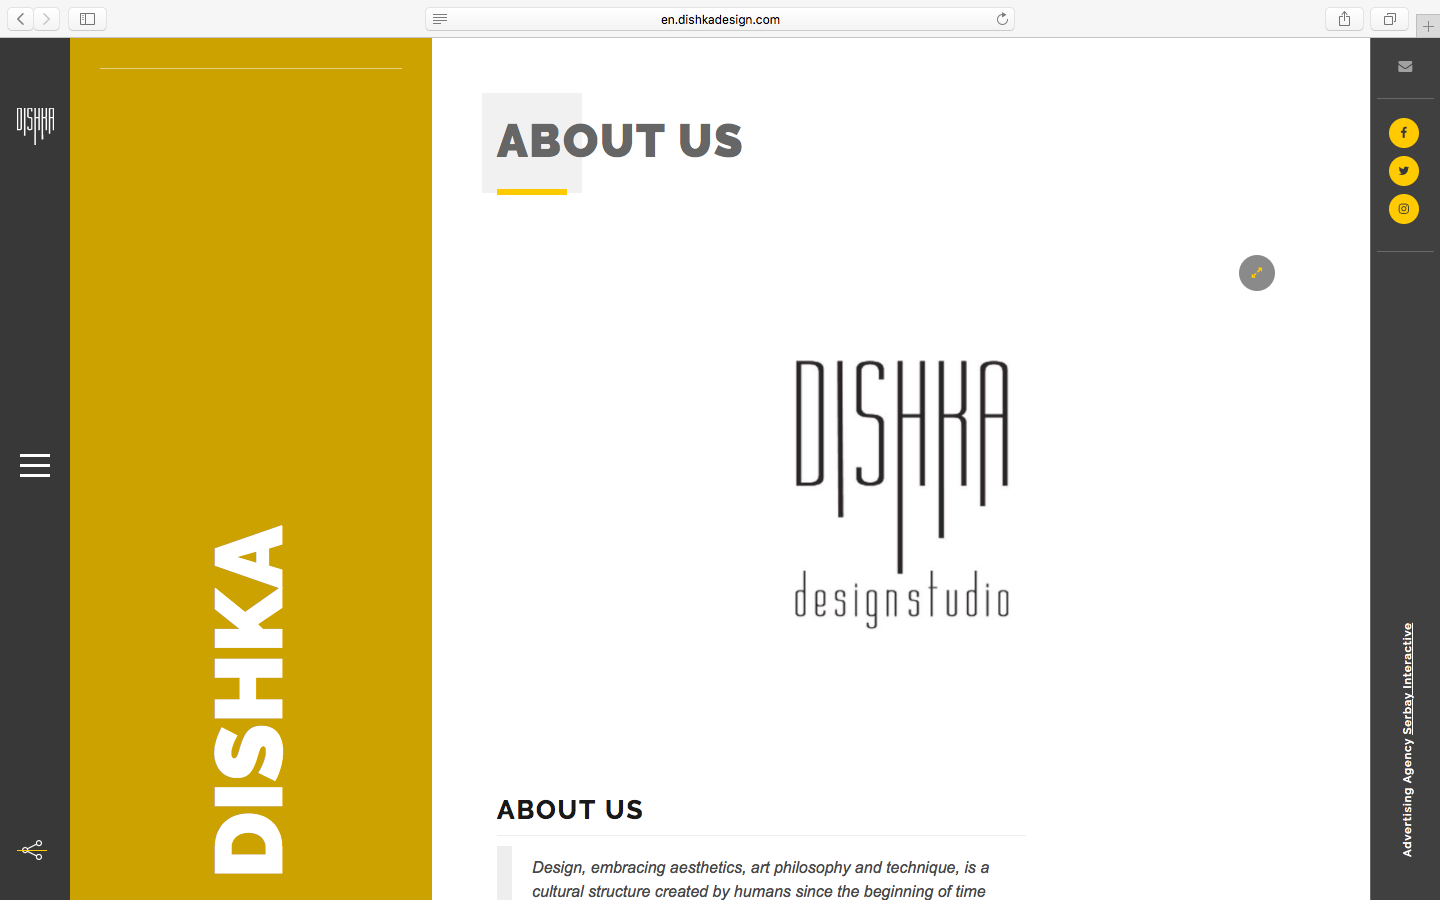 Dishka Design